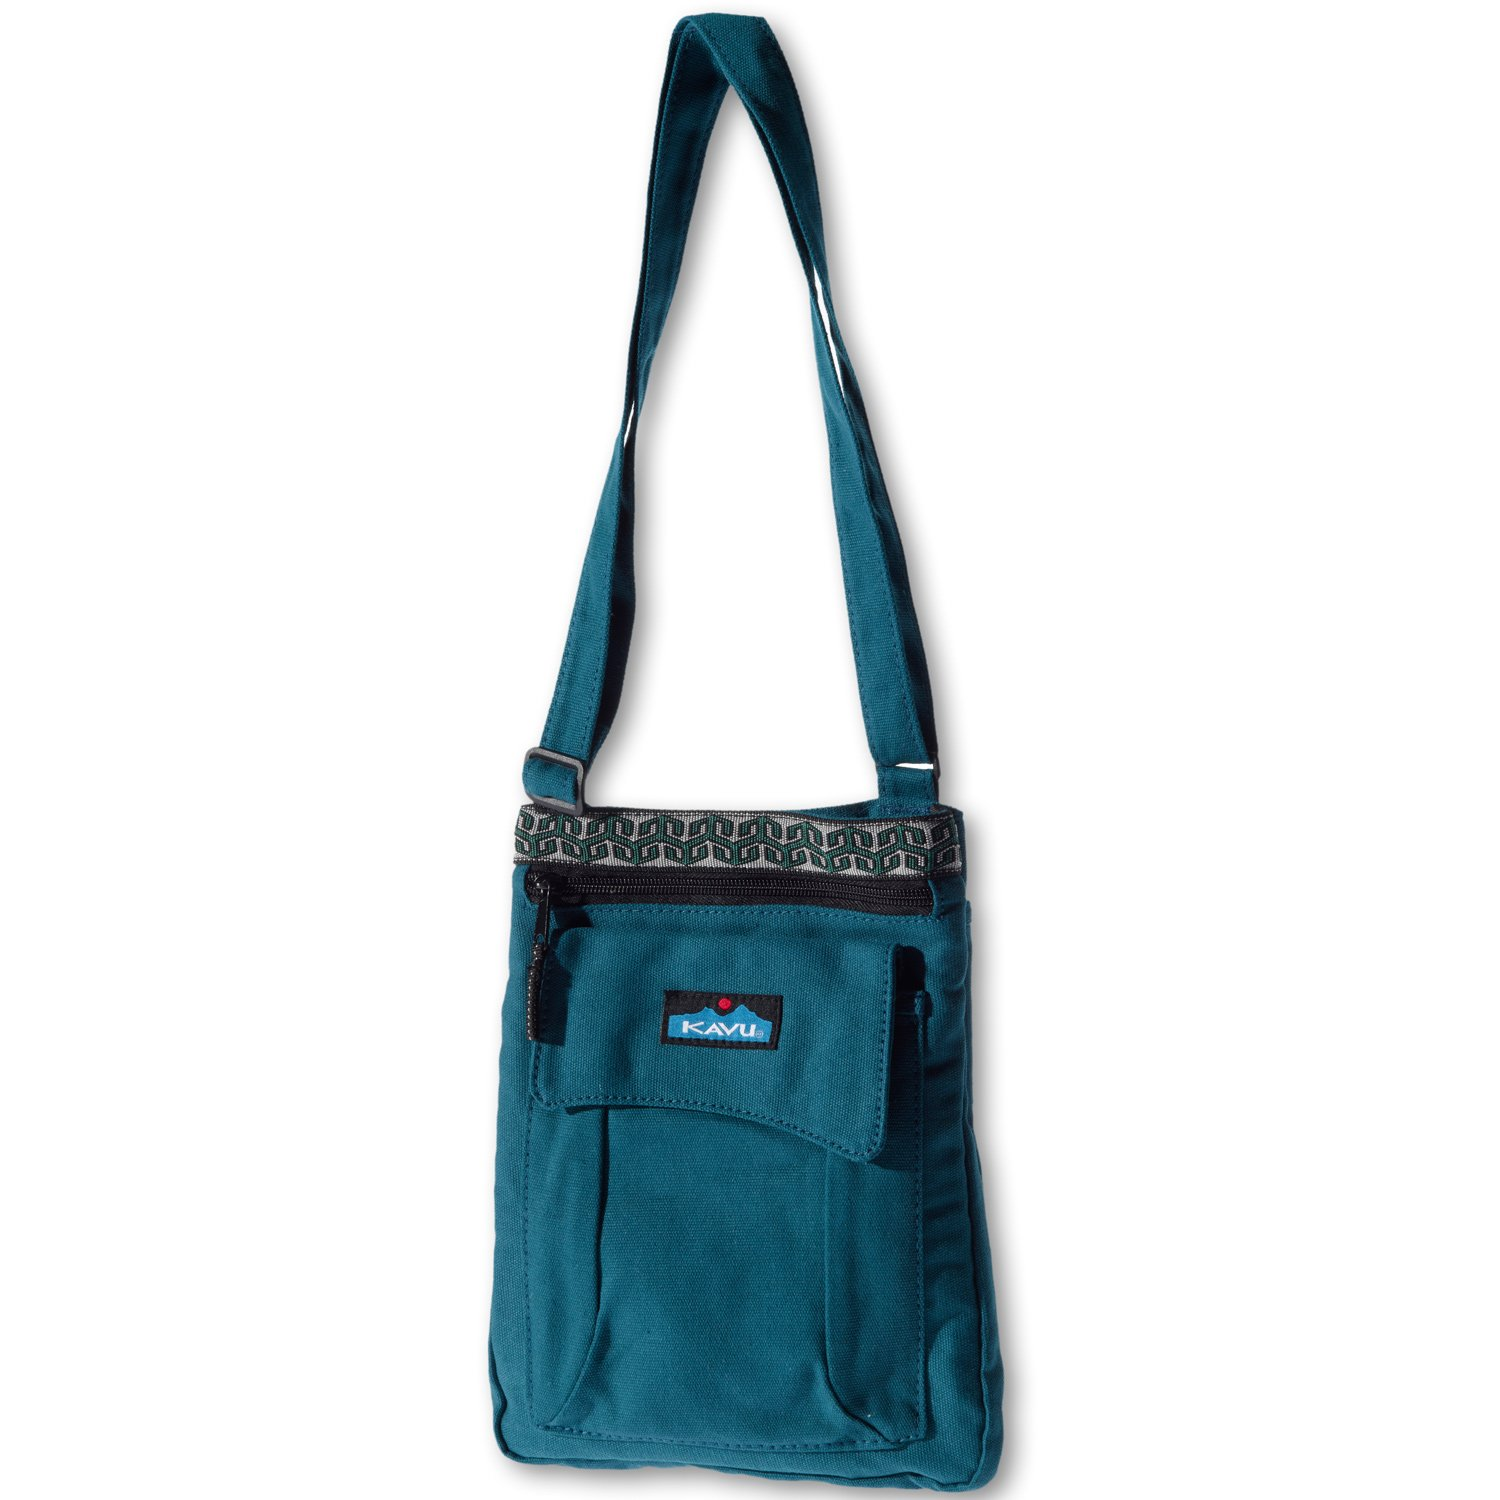 Kavu Kicker Shoulder Bag 115